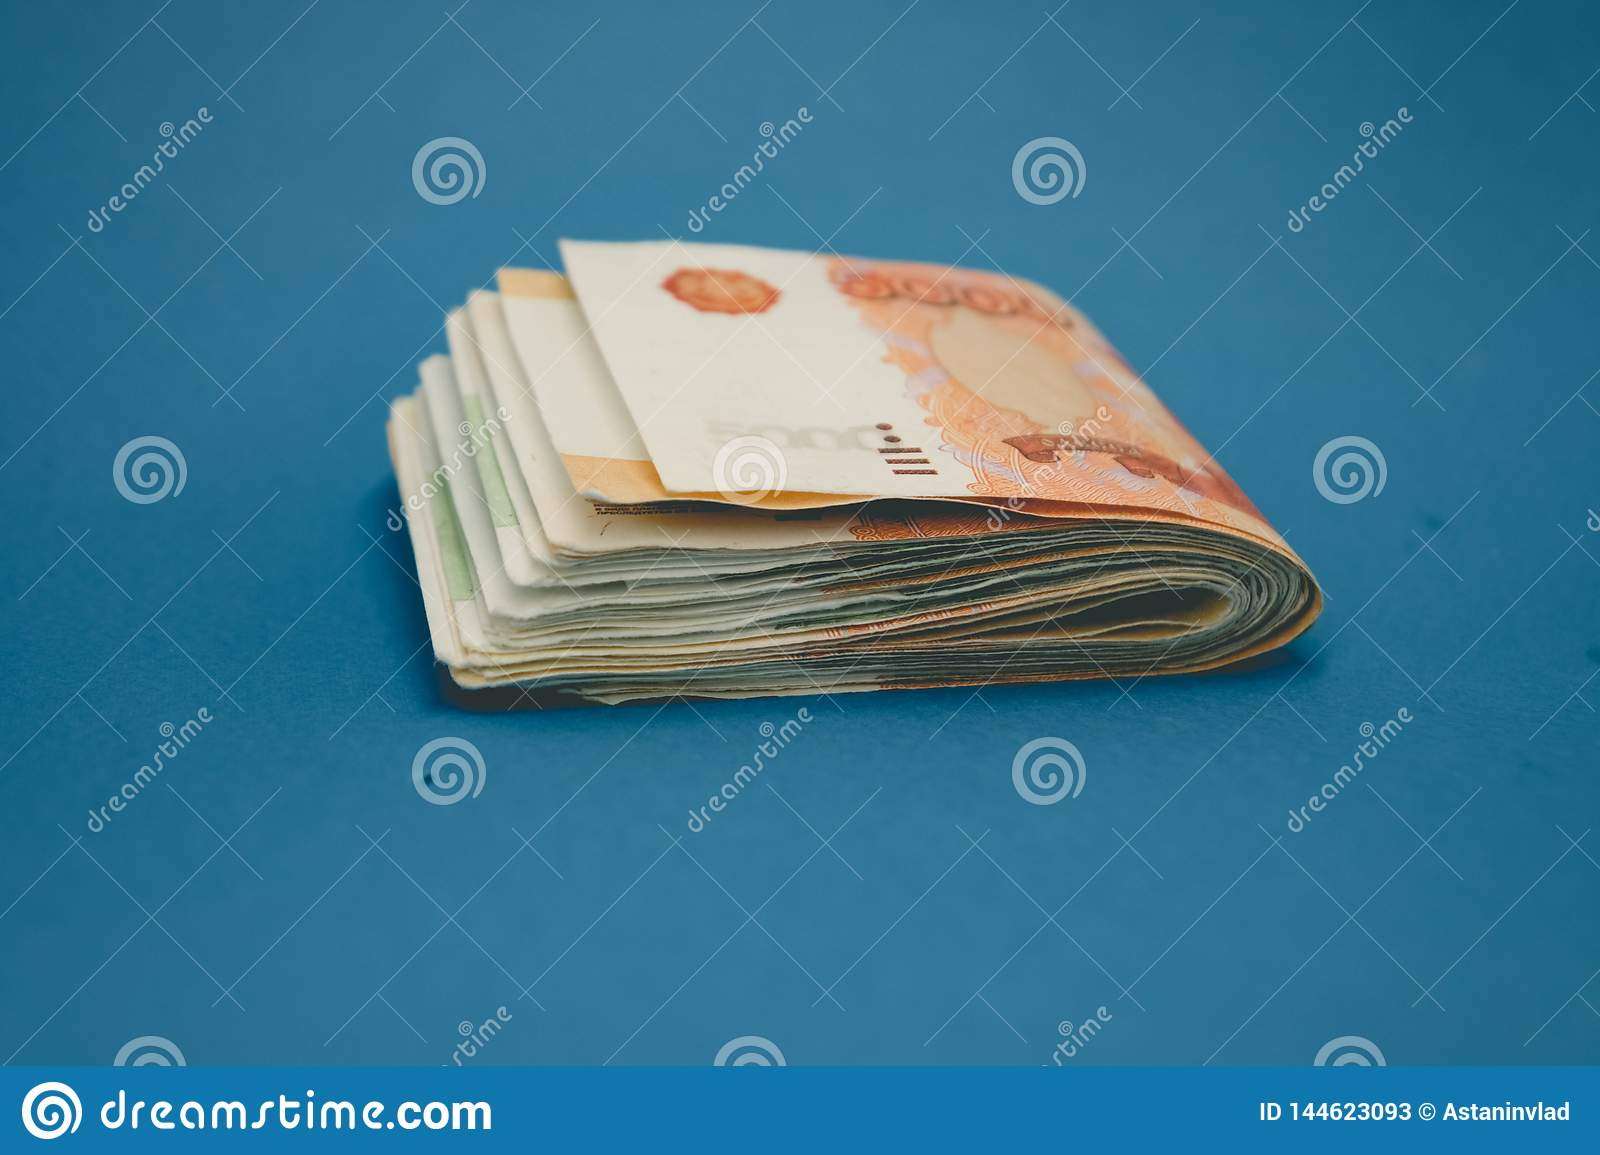 hick stack of cash money. The concept of rich, wealth, profits, business and finance. Five thousandth bills banknotes